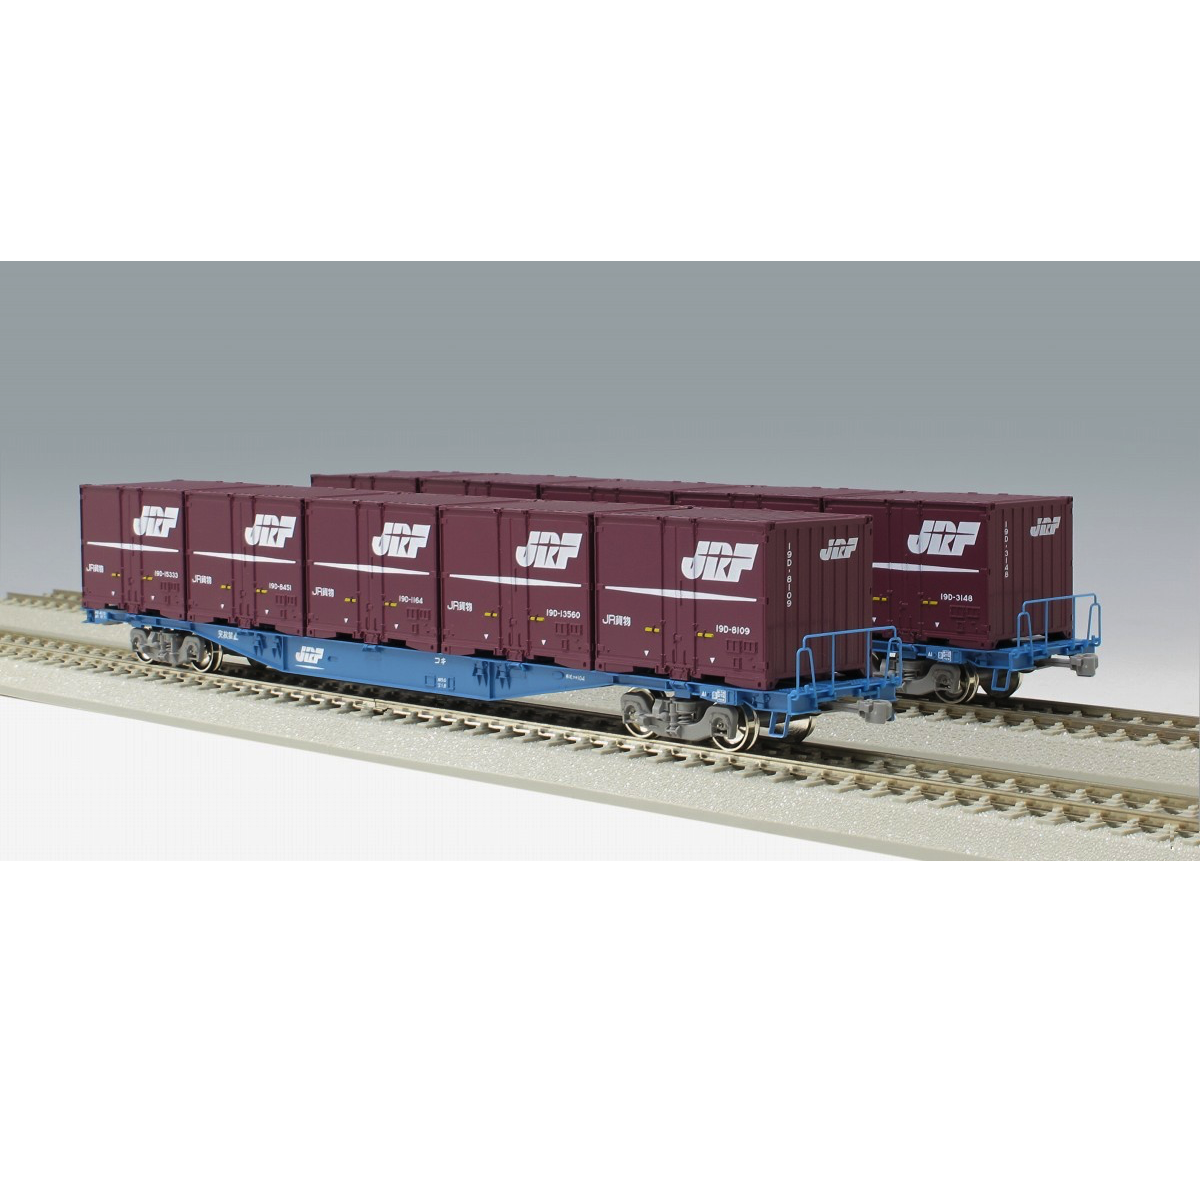 Kato 3-512 KOKI 104 19D Freight Cars + Containers 2 Cars Set - HO  used